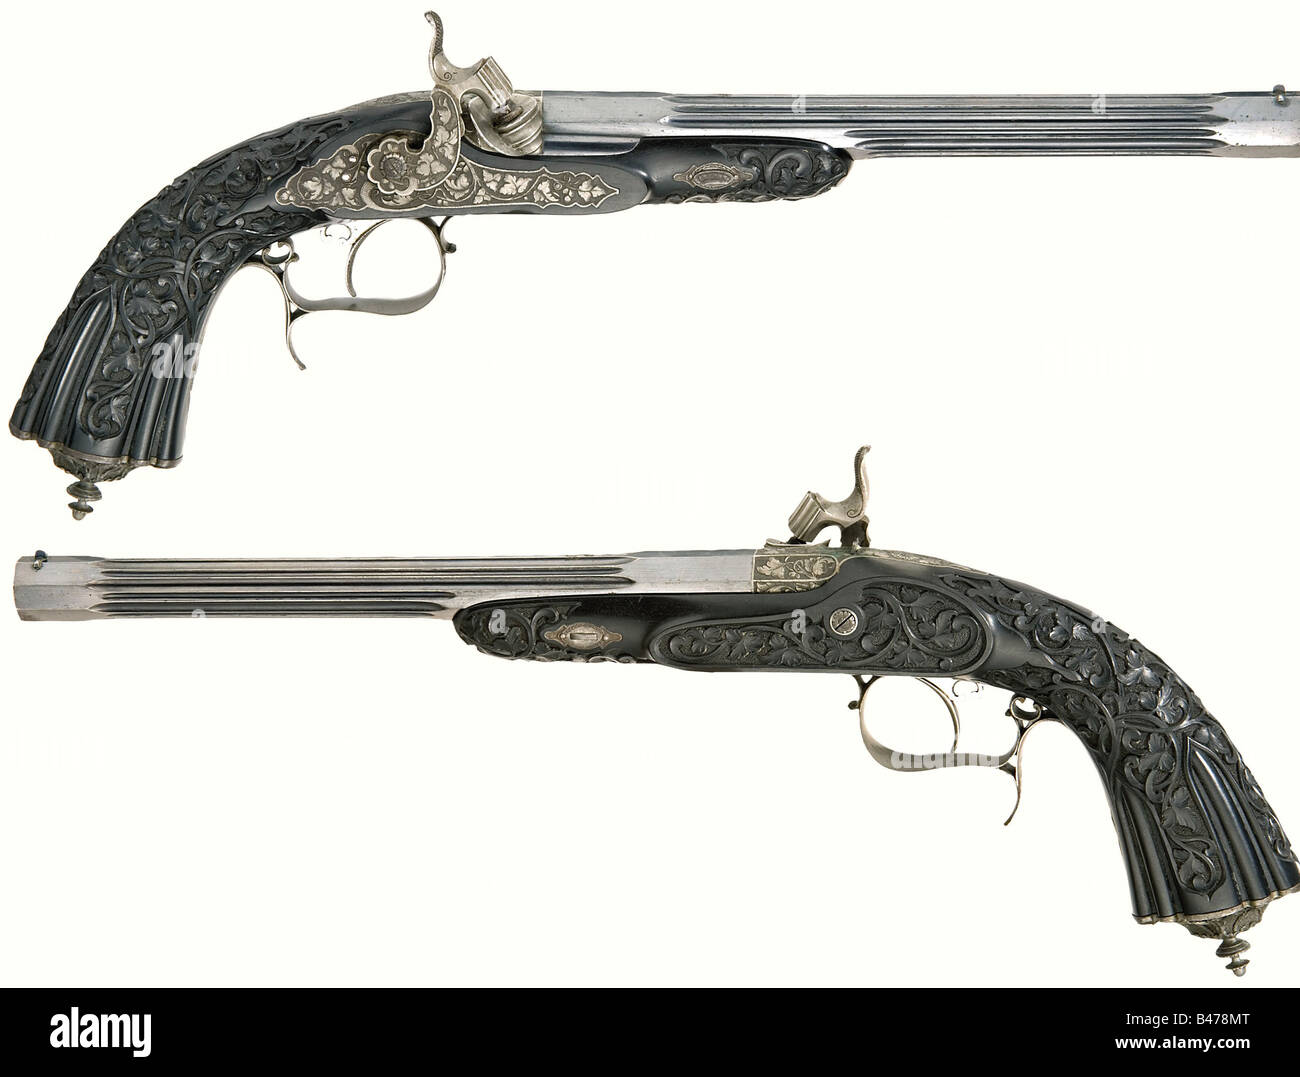 A cased pair of fine percussion pistols, Liège, circa 1850. Octagonal, fluted blued barrels with patent breechblock - Stock Image